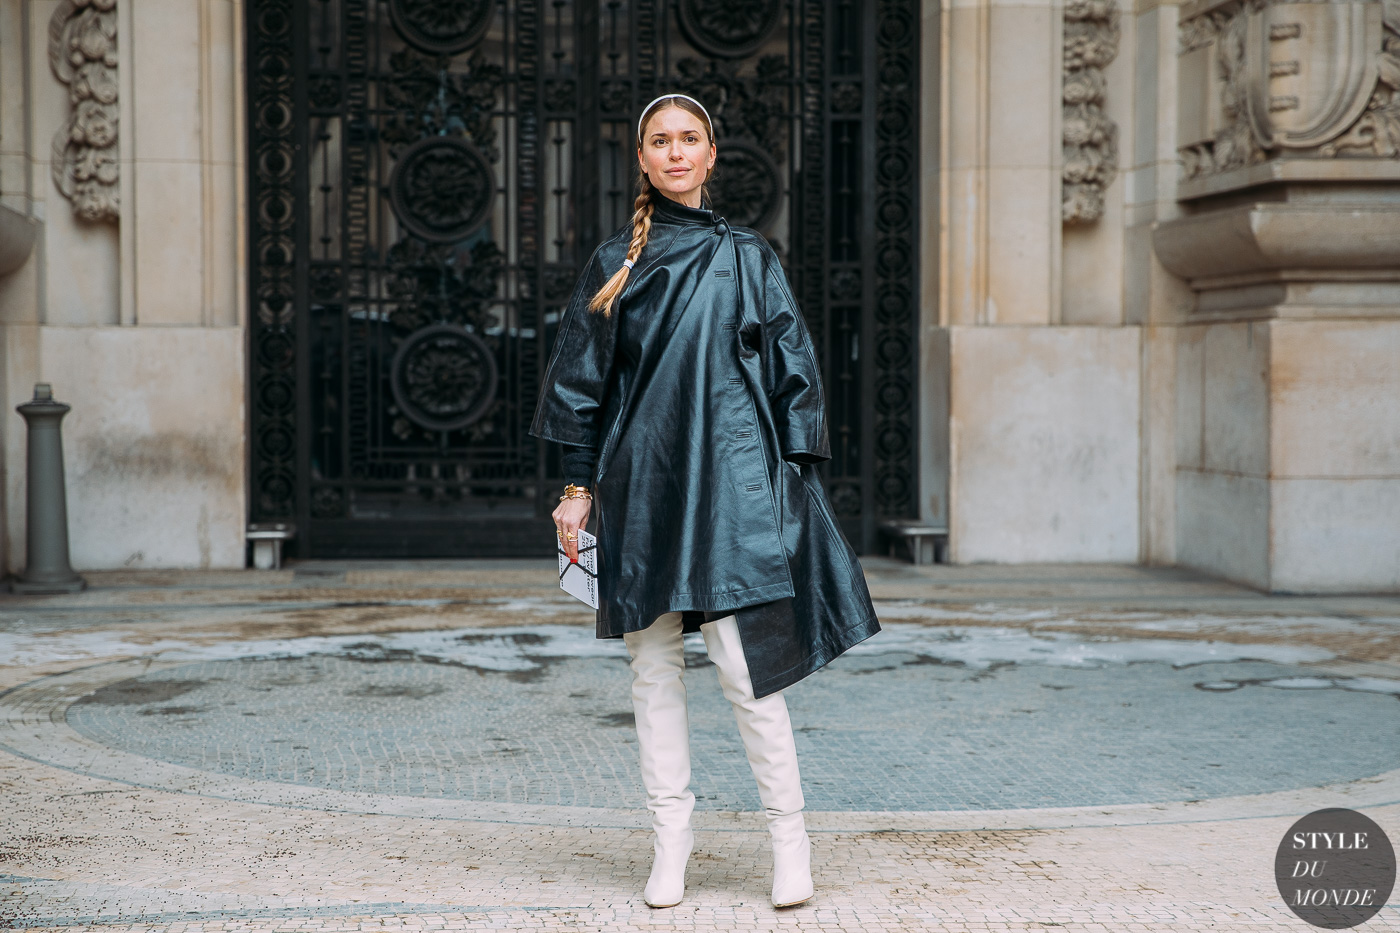 Pernille Teisbaek by STYLEDUMONDE Street Style Fashion Photography FW18 20180301_48A2198